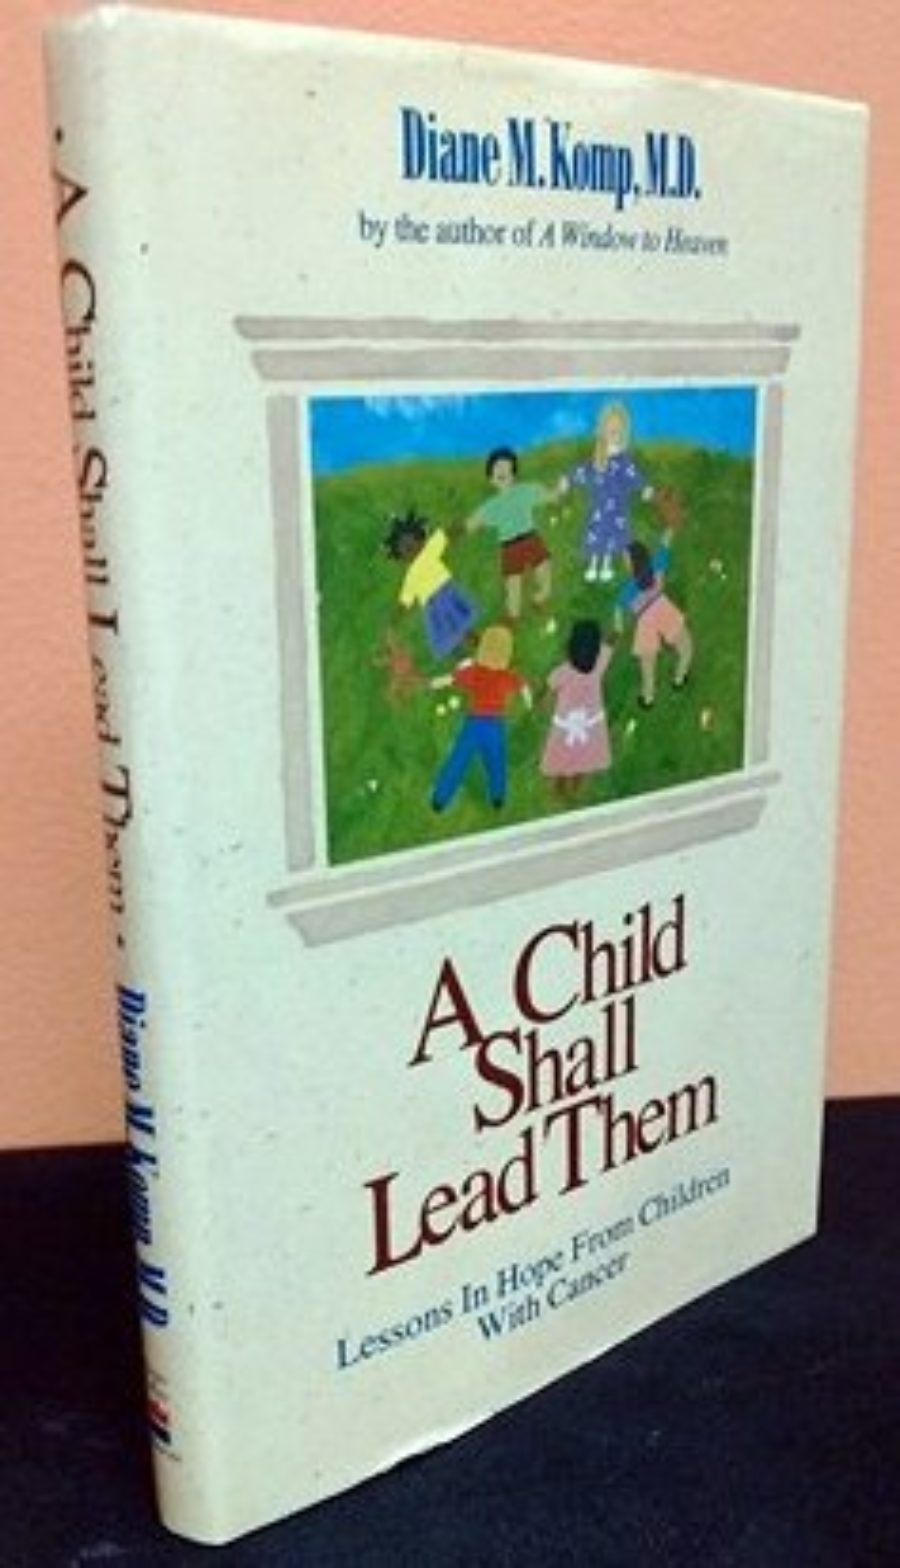 Cover of A Child Shall Lead Them: Lessons About Hope from Children With Cancer